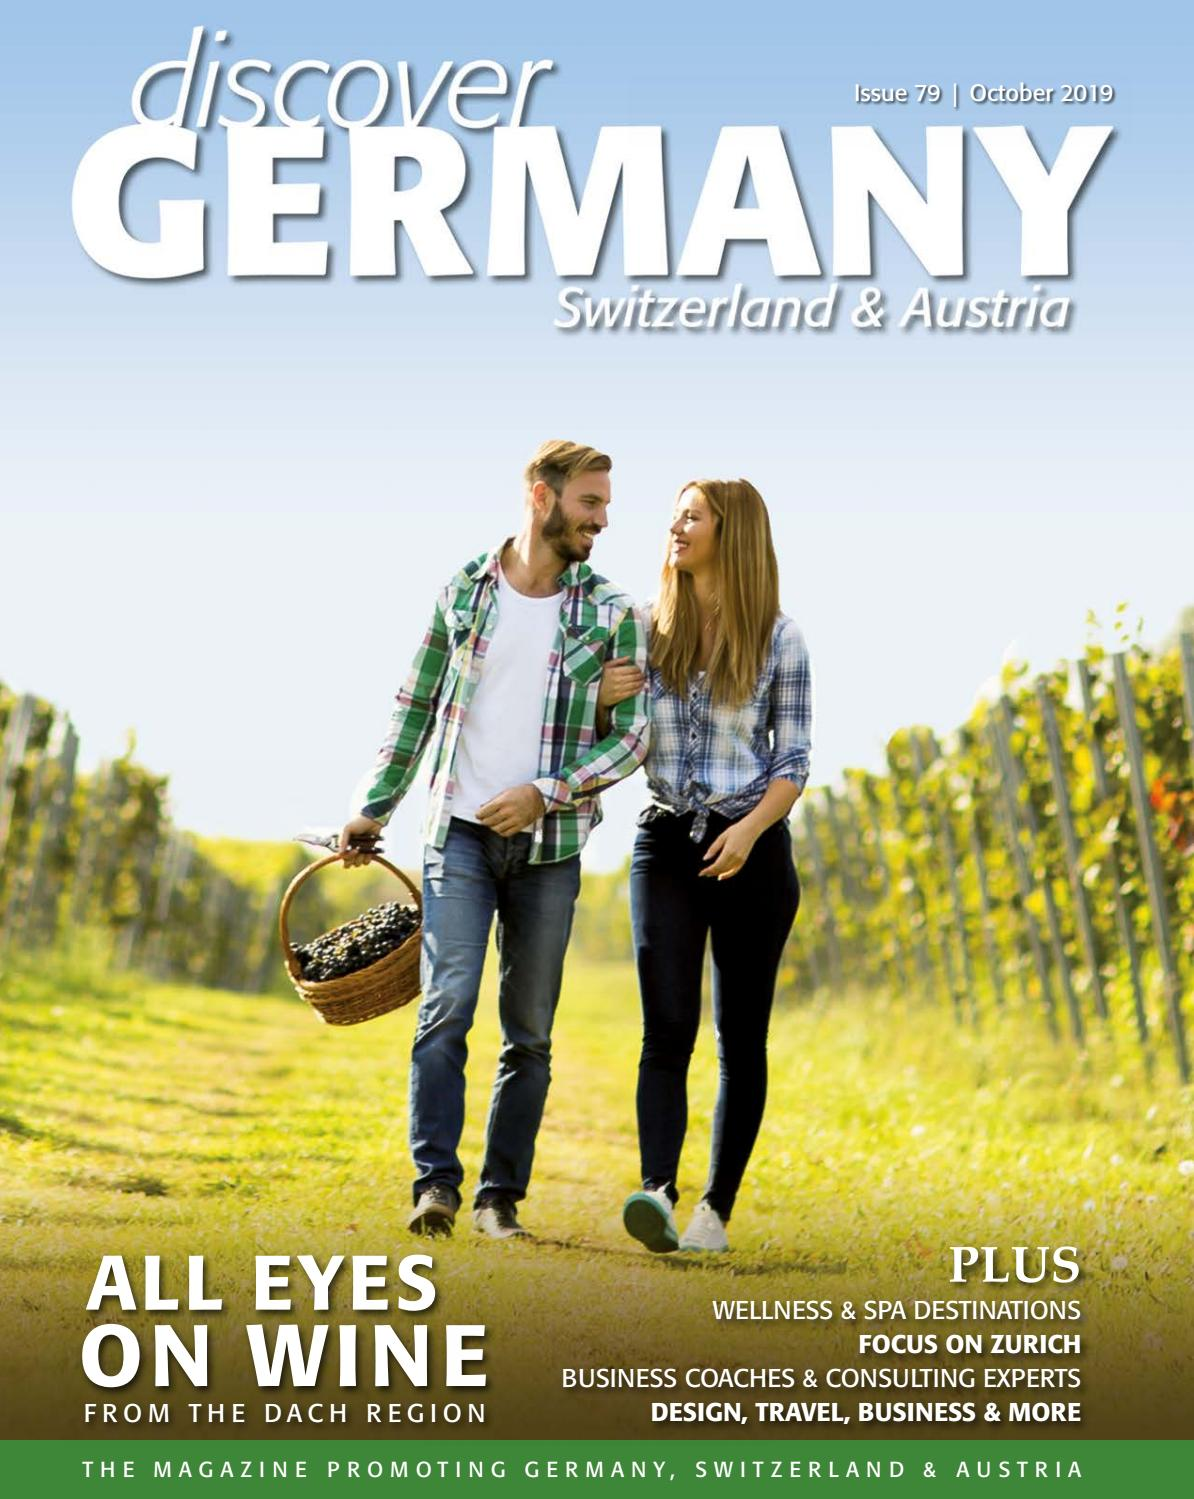 Discover Germany Issue 79 October 2019 By Scan Client Publishing Issuu